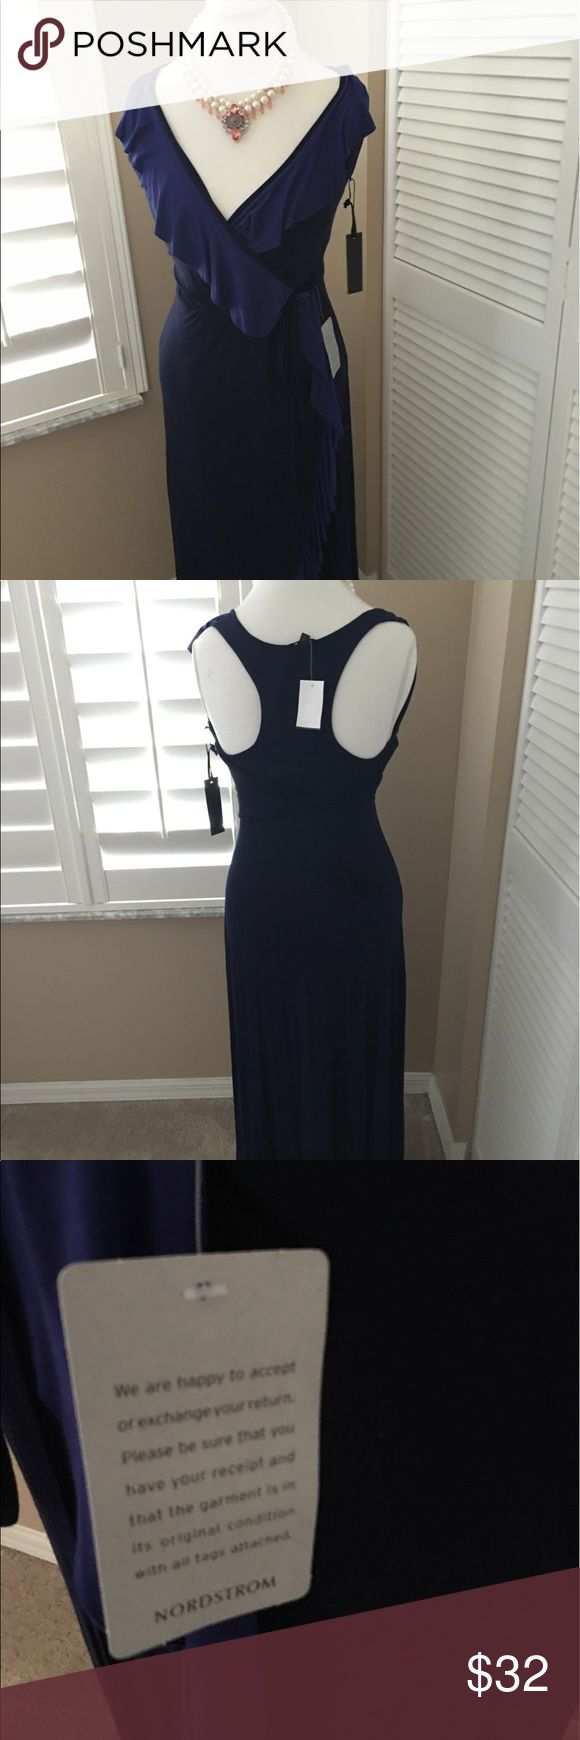 Felicia & COCO Dress 1 Hour sale New w/tags . Navy & a lighter Blue frames the dress .Very soft materials. Tags are attached I just didn't realize it was a racer  back .Smoke free home . Bought at Nordstrom . felicity & Coco Dresses Maxi